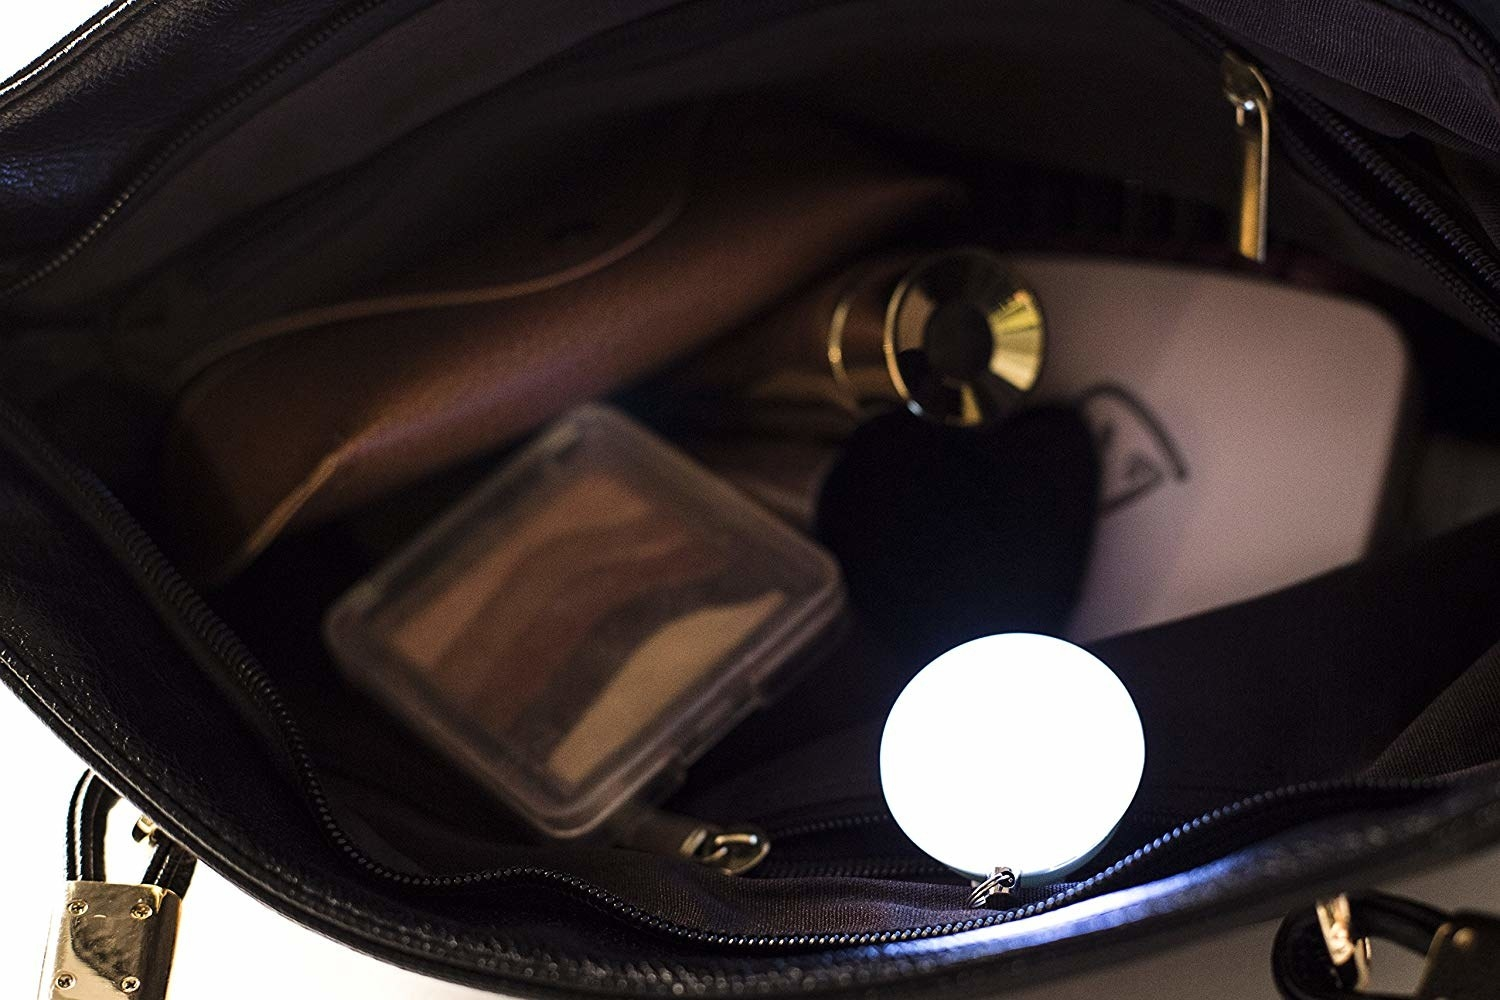 A small round light clipped onto the inside of a bag